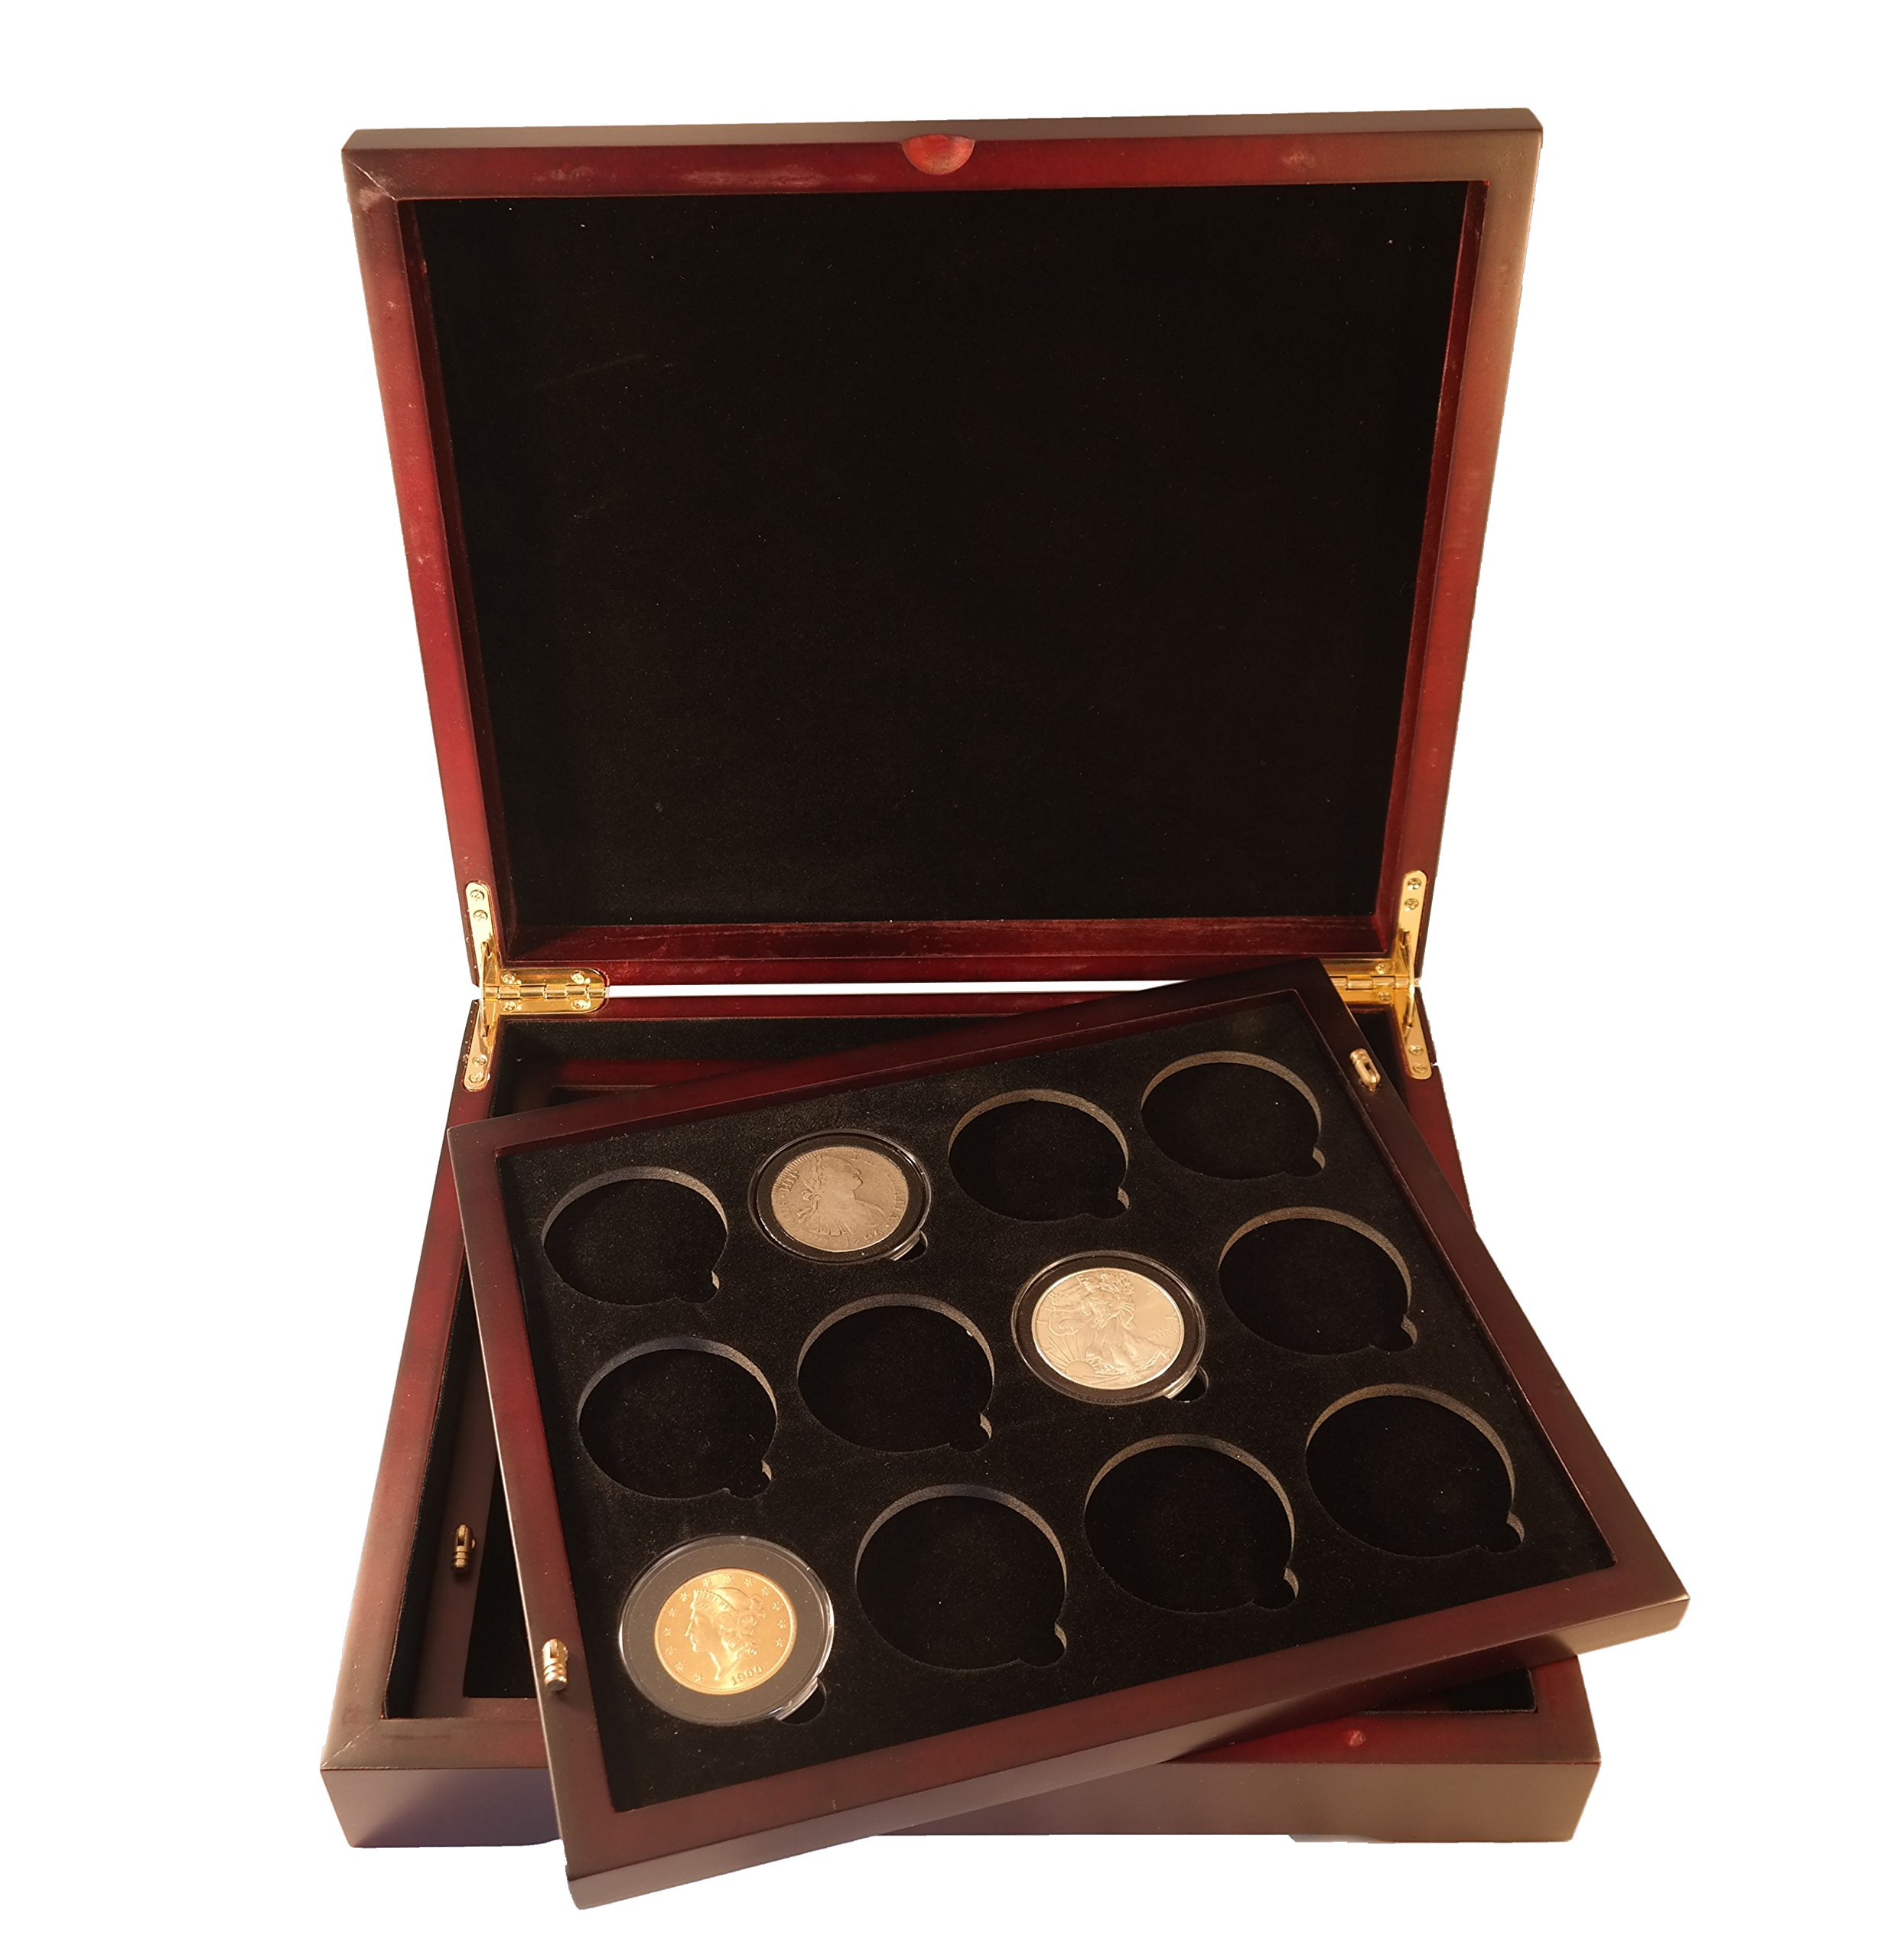 Coin Tray for 12 Extra Large or Air-Tite ''I'' Capsules / 2'' Challenge Coins fits in Mahogany Finish Wood Display Case by Guardhouse (Image #4)